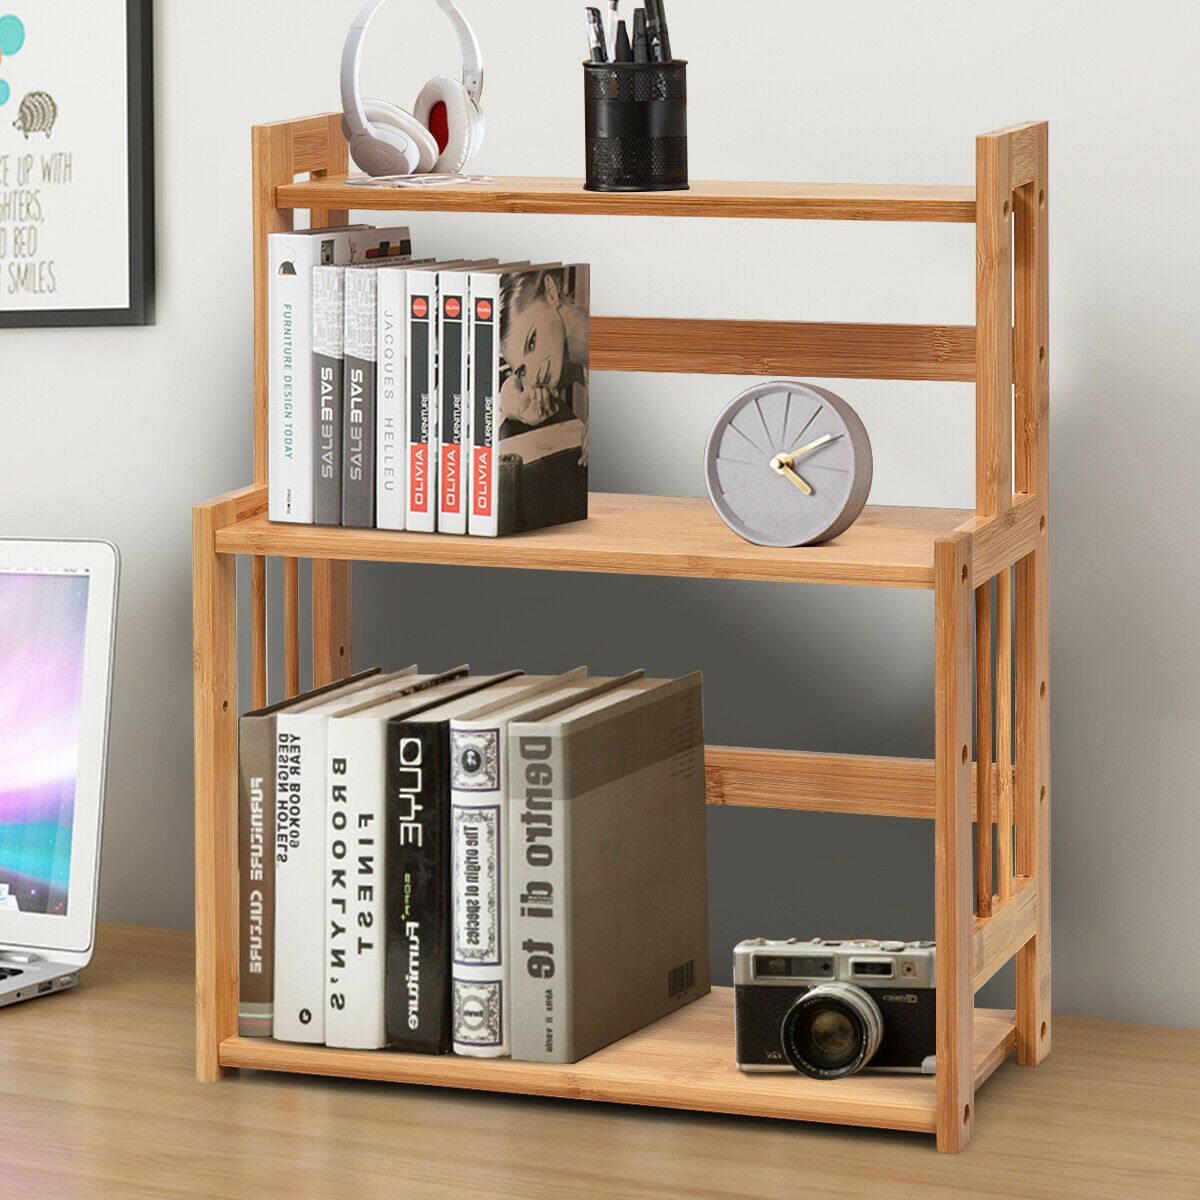 3 Tier Bamboo Spice Rack With Adjustable Shelf Bamboo Spice Rack Spice Rack Storage Adjustable Shelving